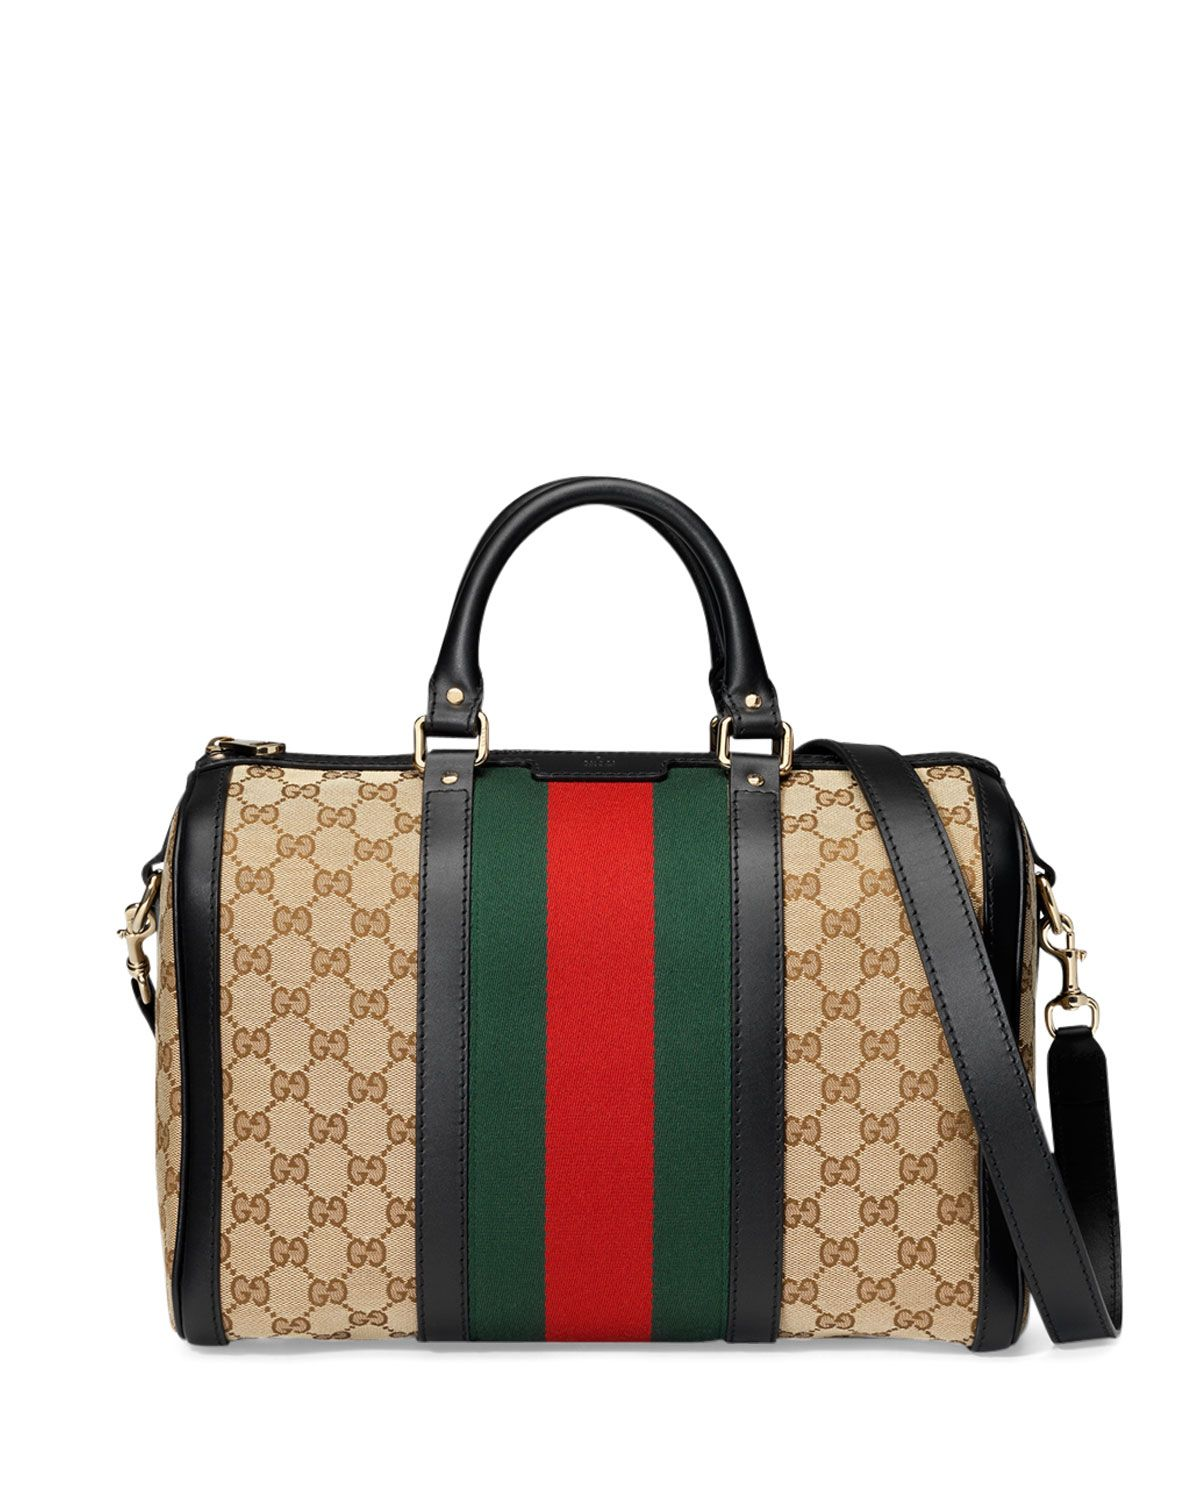 6cac86849c75 Vintage Web Medium Boston Bag Black/Red/Green | *Neiman Marcus ...